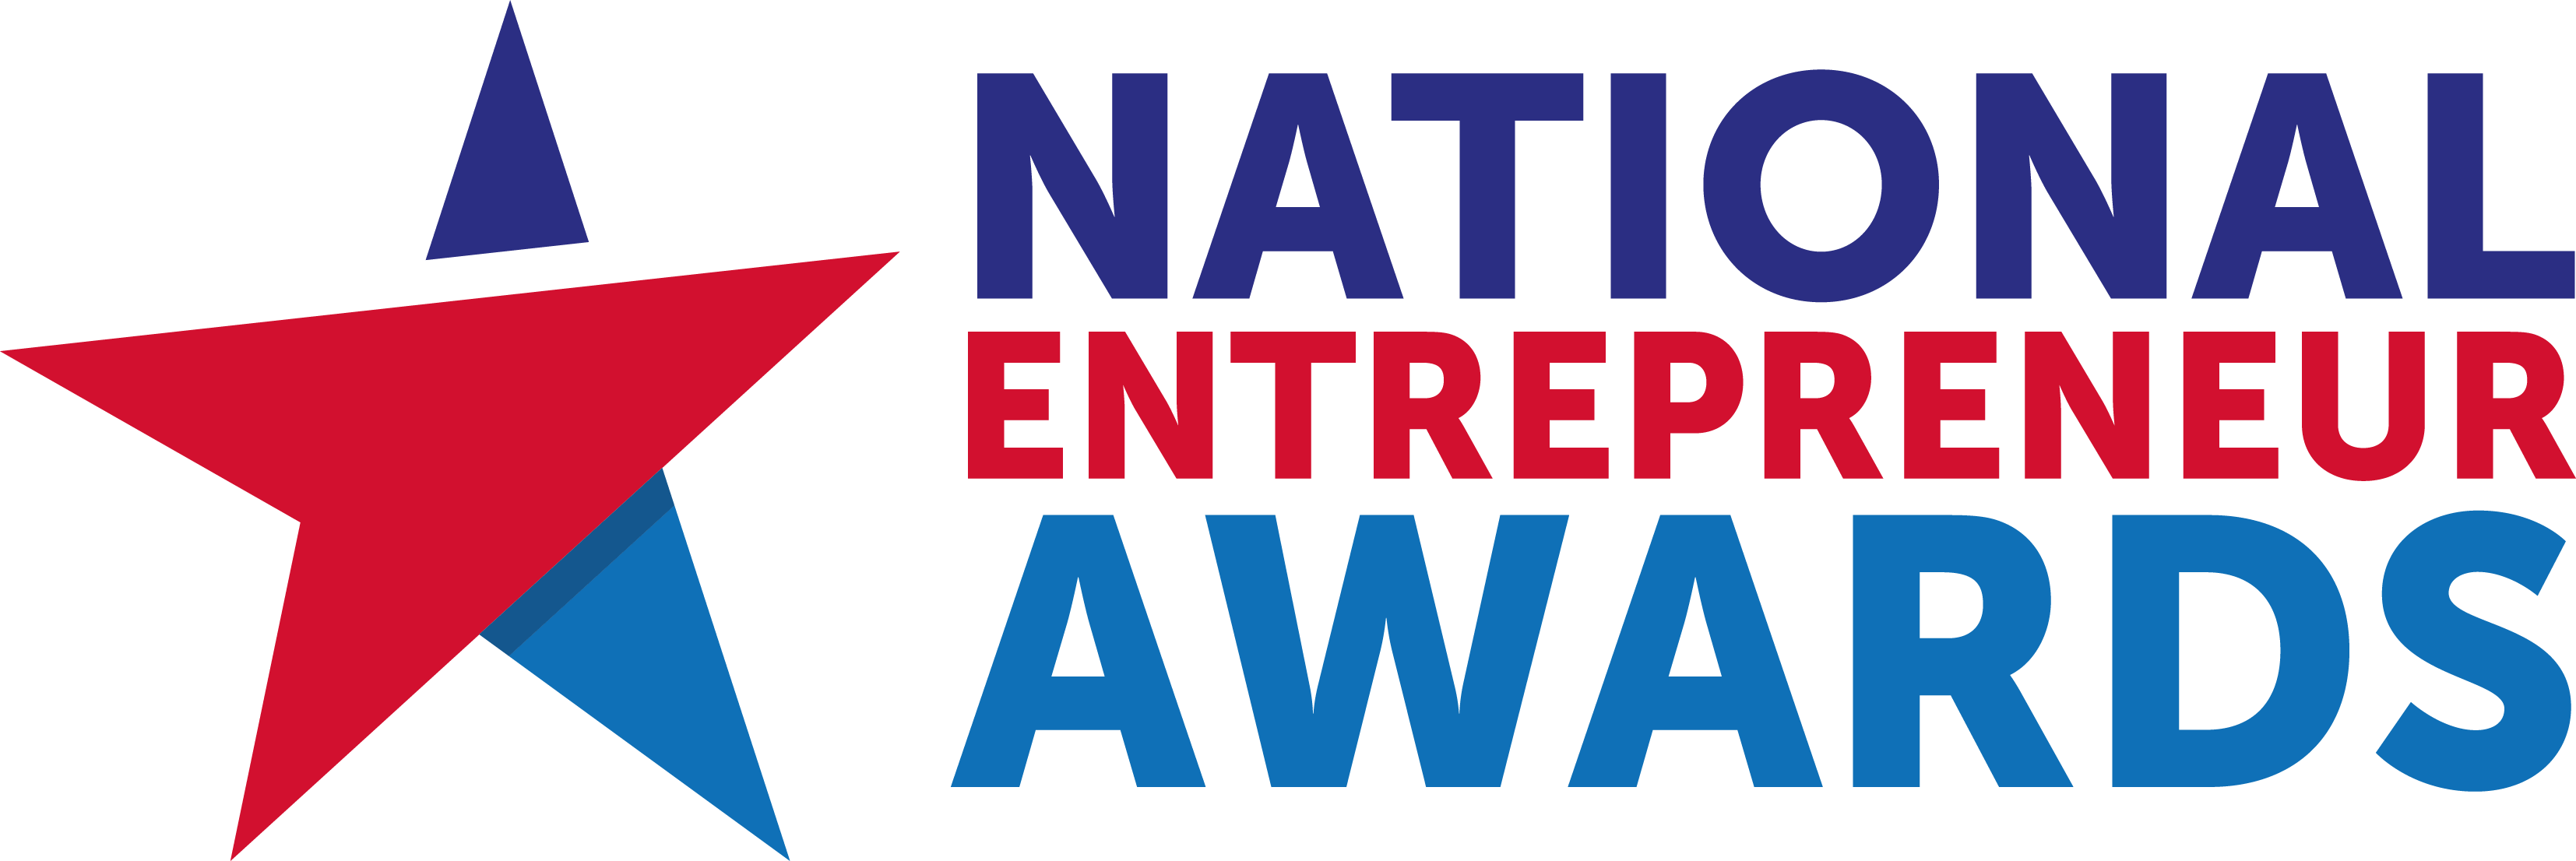 National Entrepreneur Awards